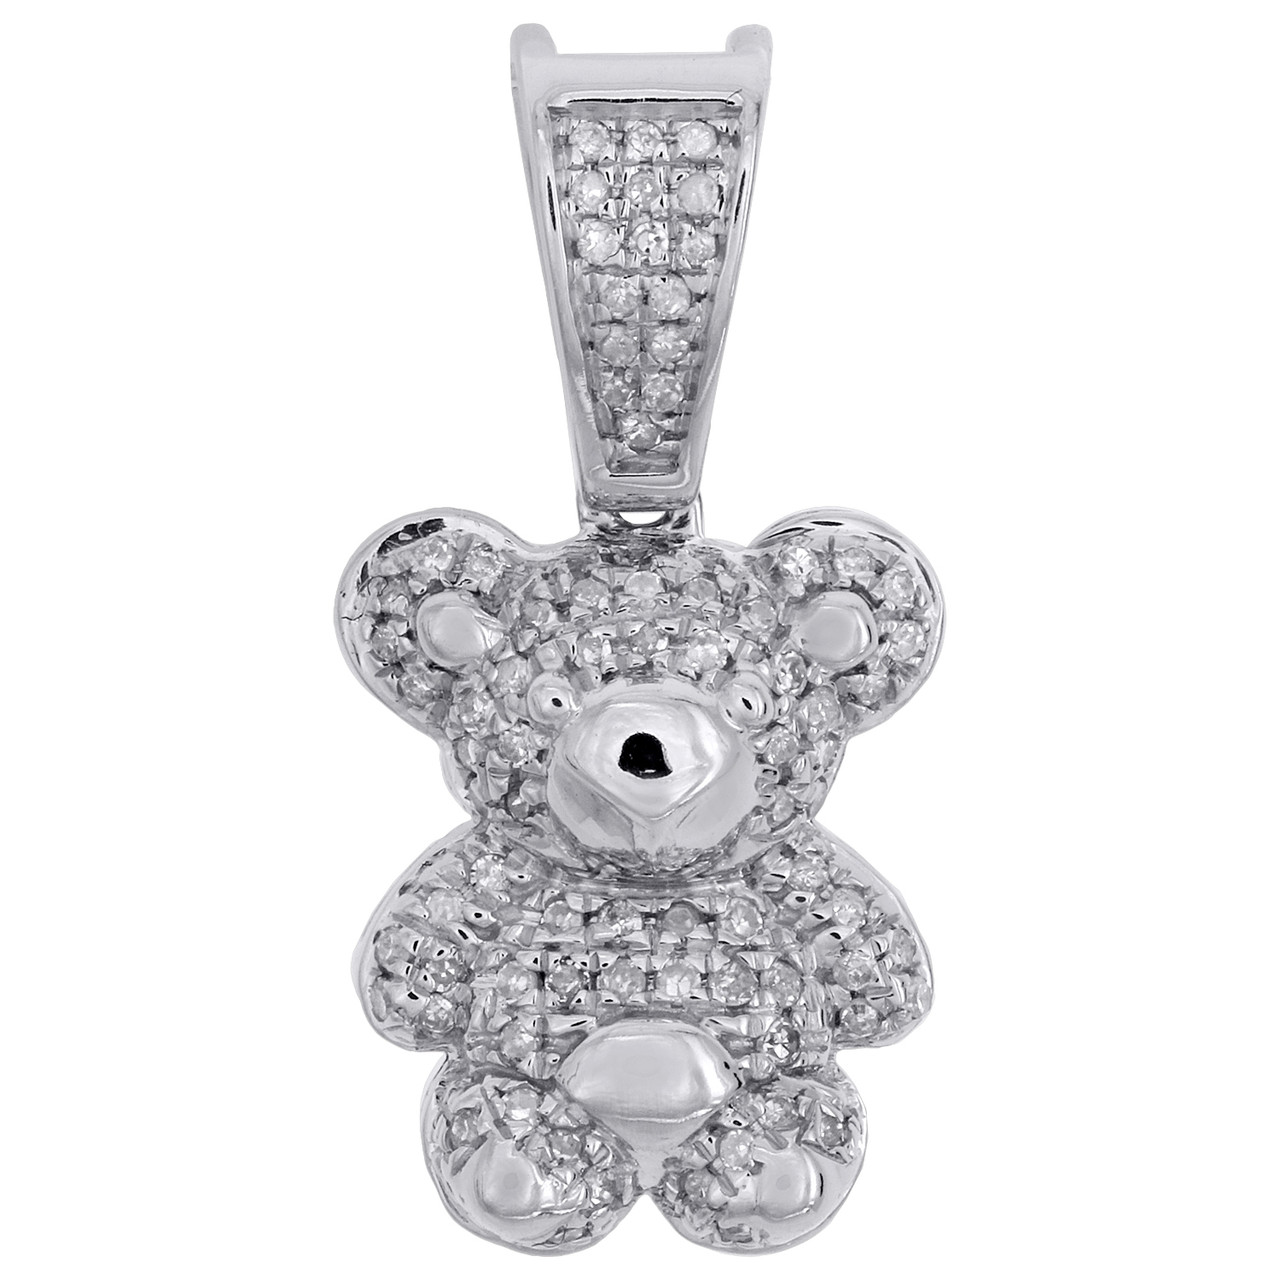 10k Yellow Gold Teddy Bear Charm Charms for Bracelets and Necklaces